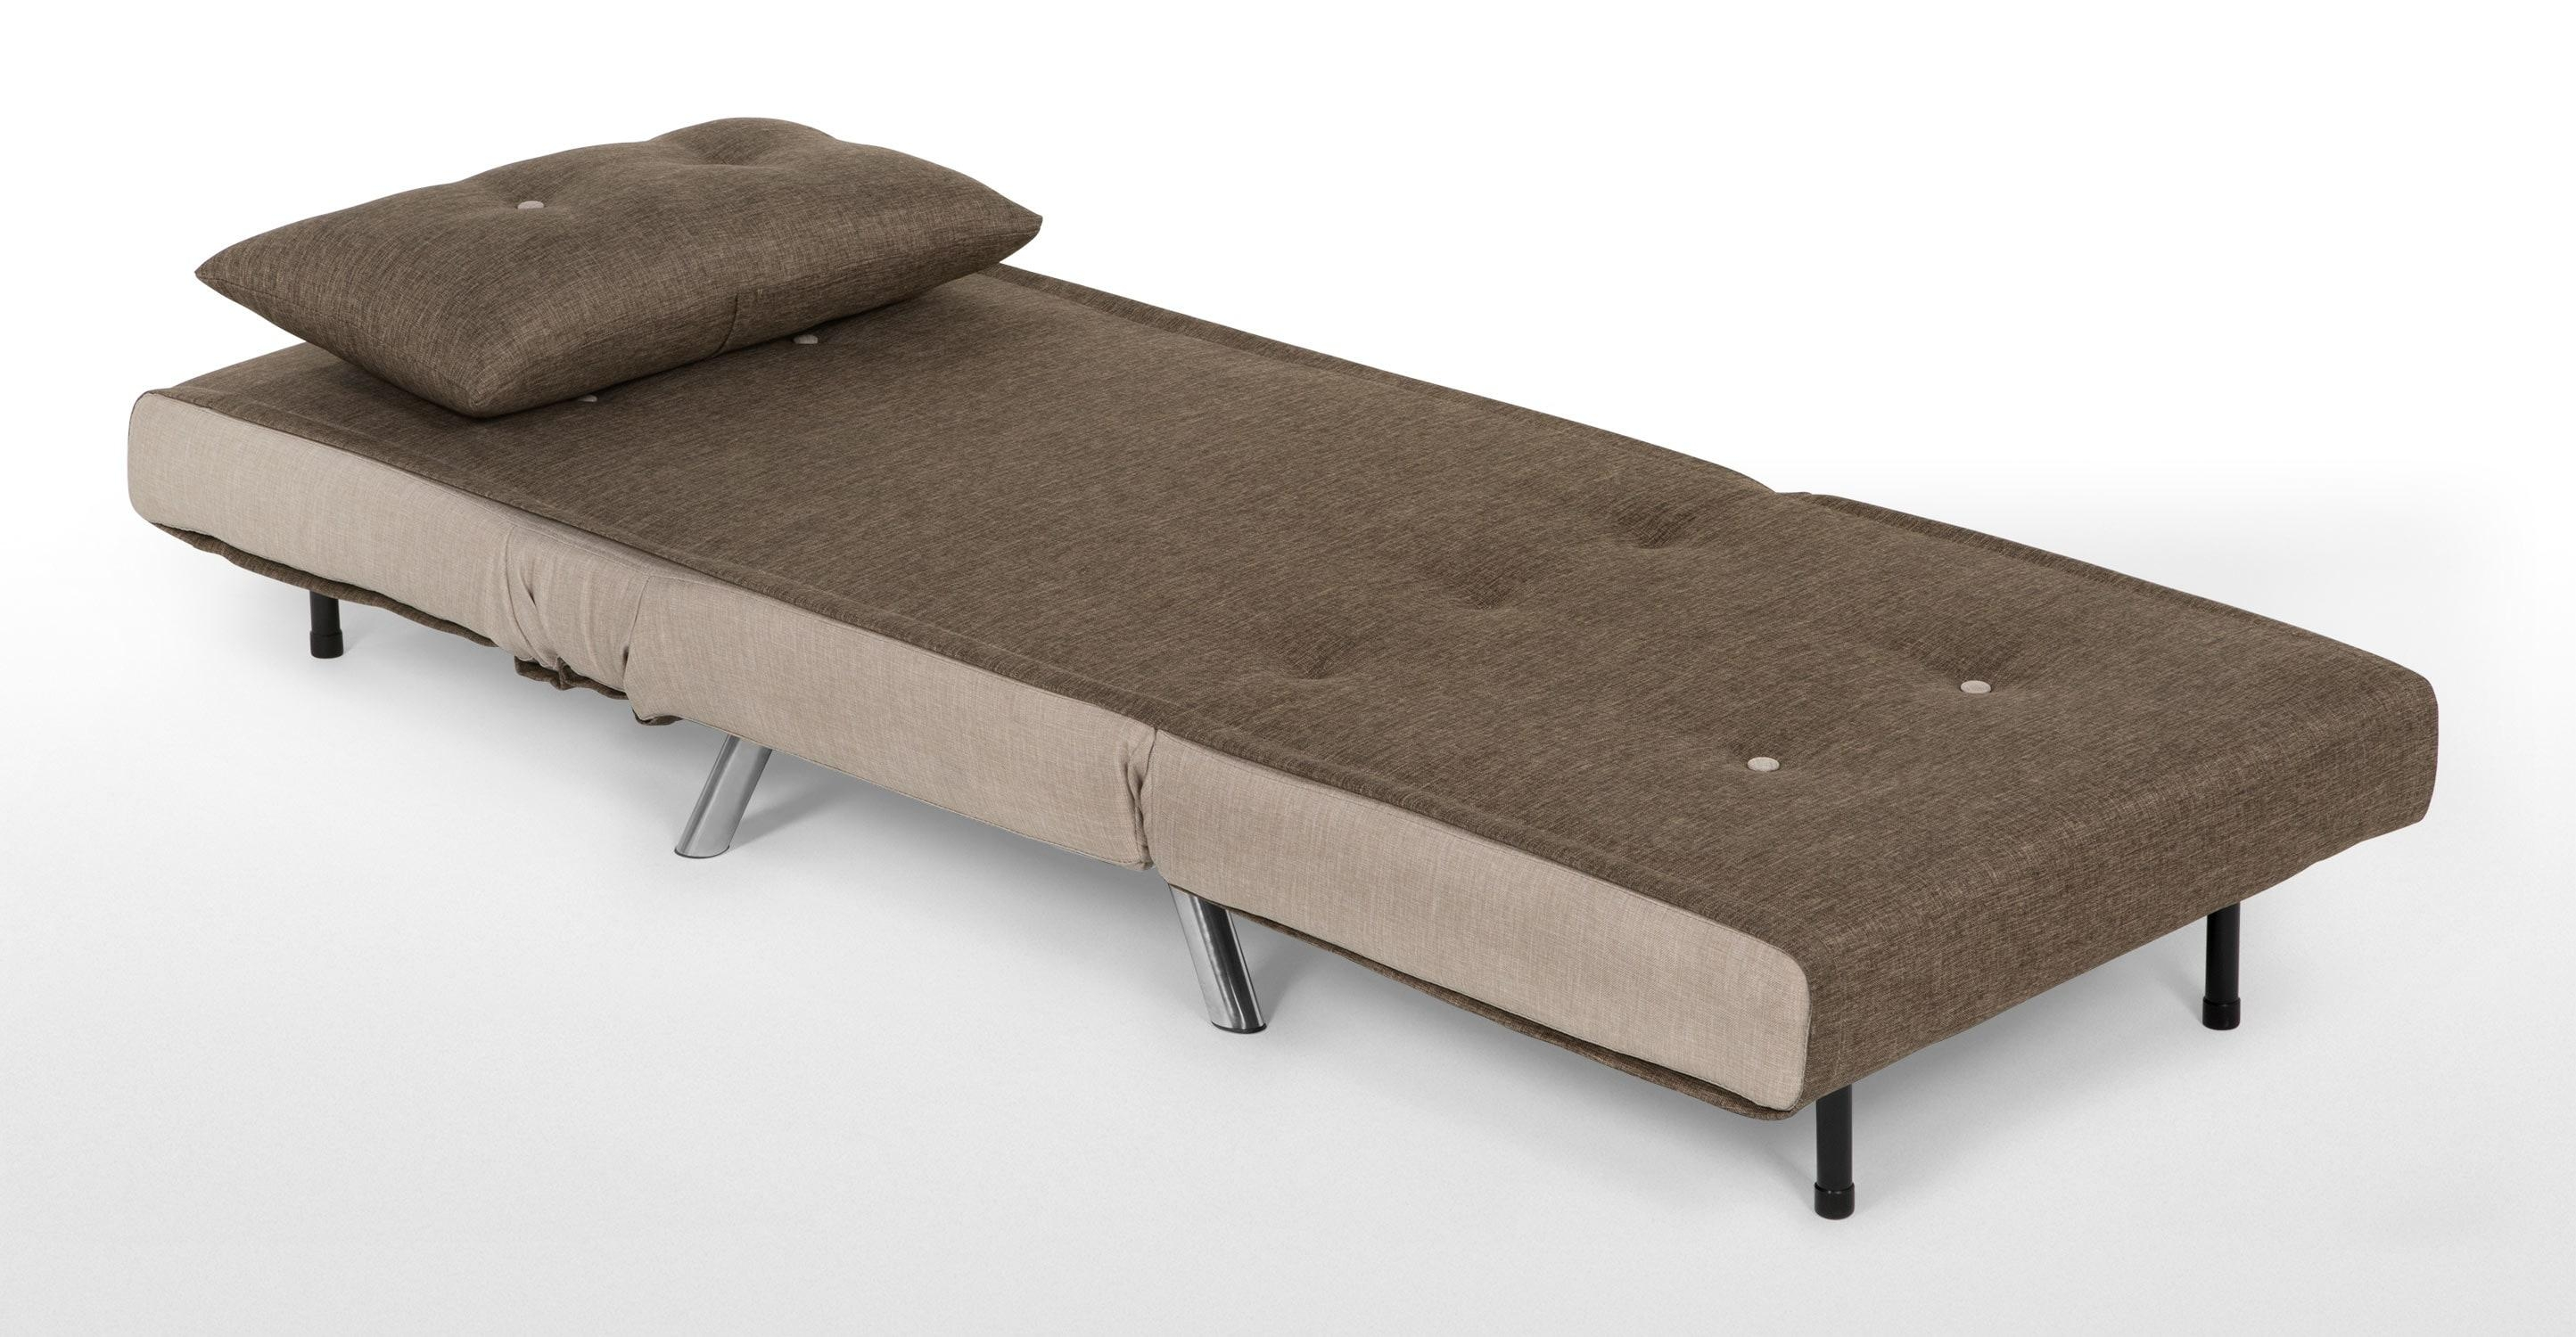 Haru Single Sofa Bed, Quartz Blue | Made Throughout Single Chair Sofa Beds (Image 9 of 22)